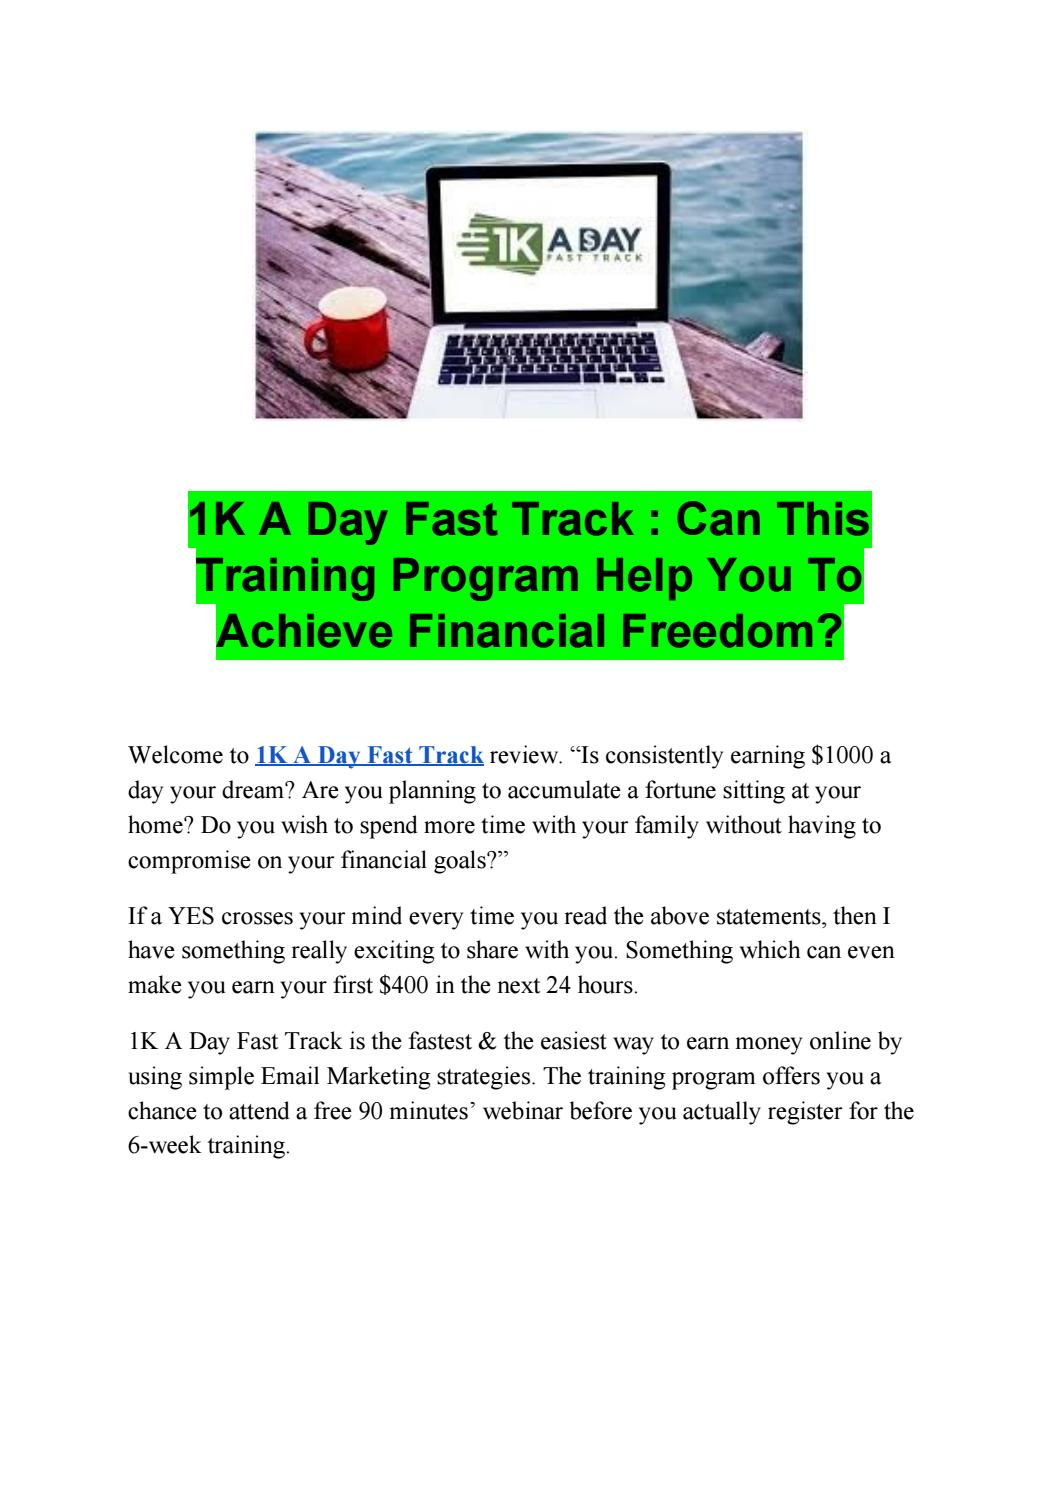 Cheap Training Program 1k A Day Fast Track In Stores